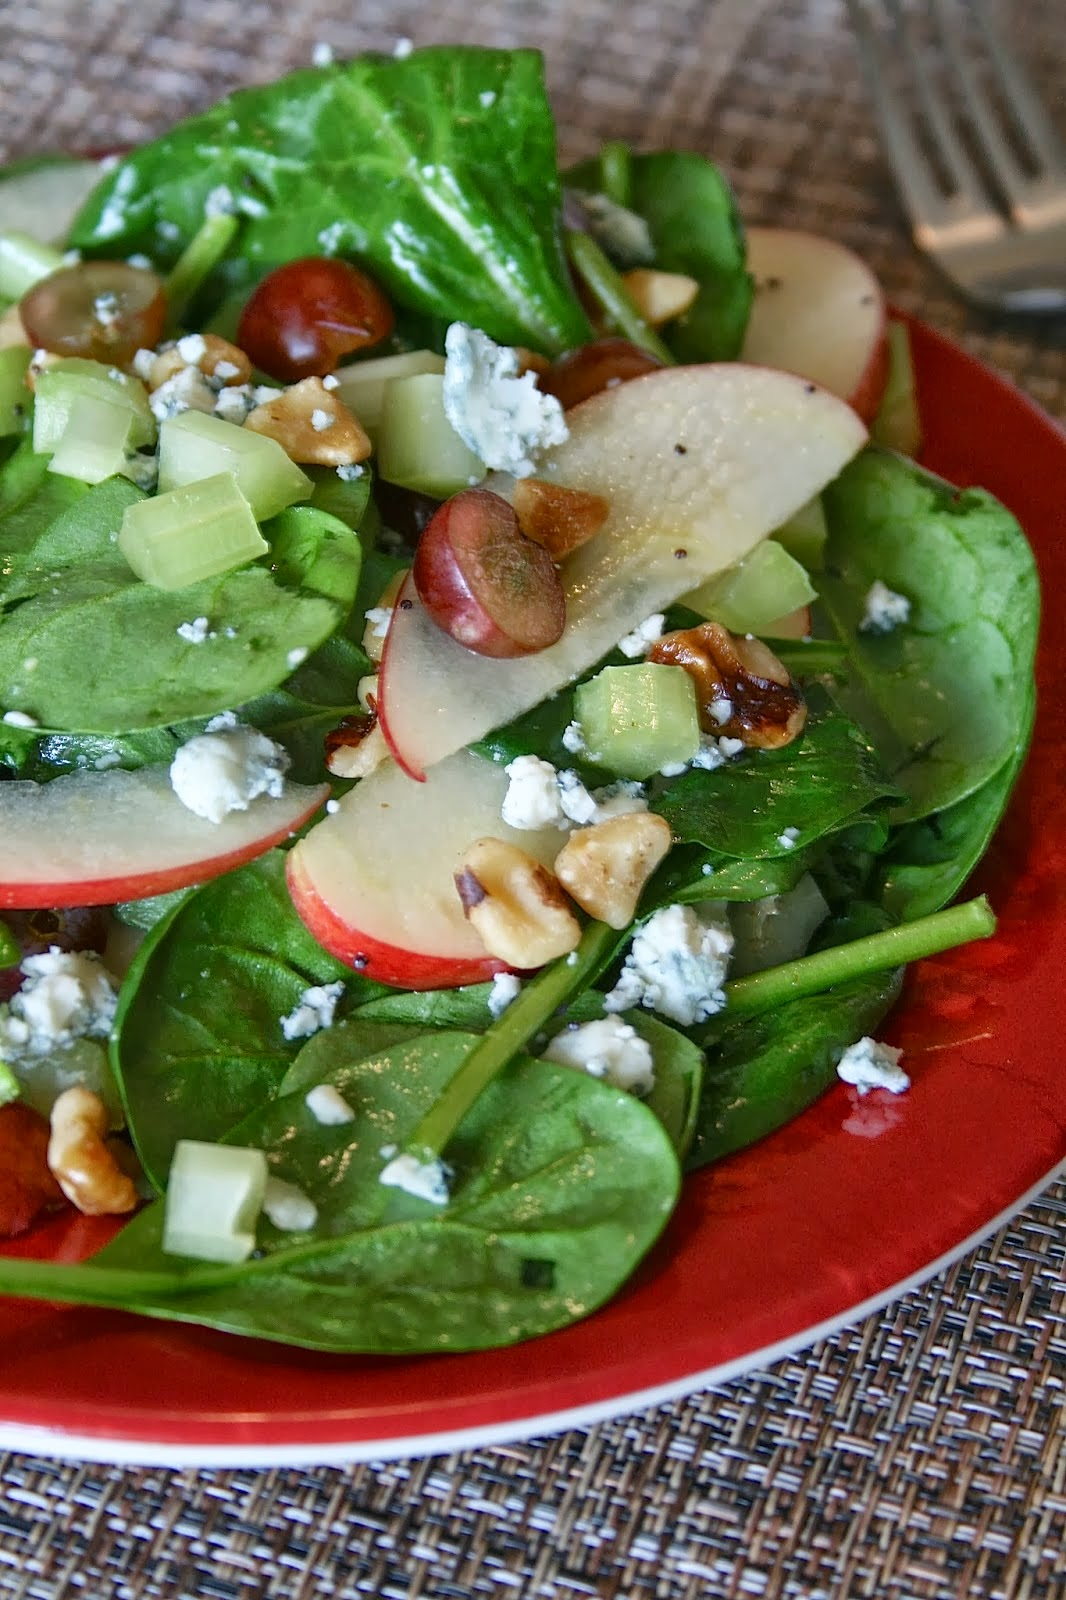 Apple Walnut Salad with Poppyseed Dressing